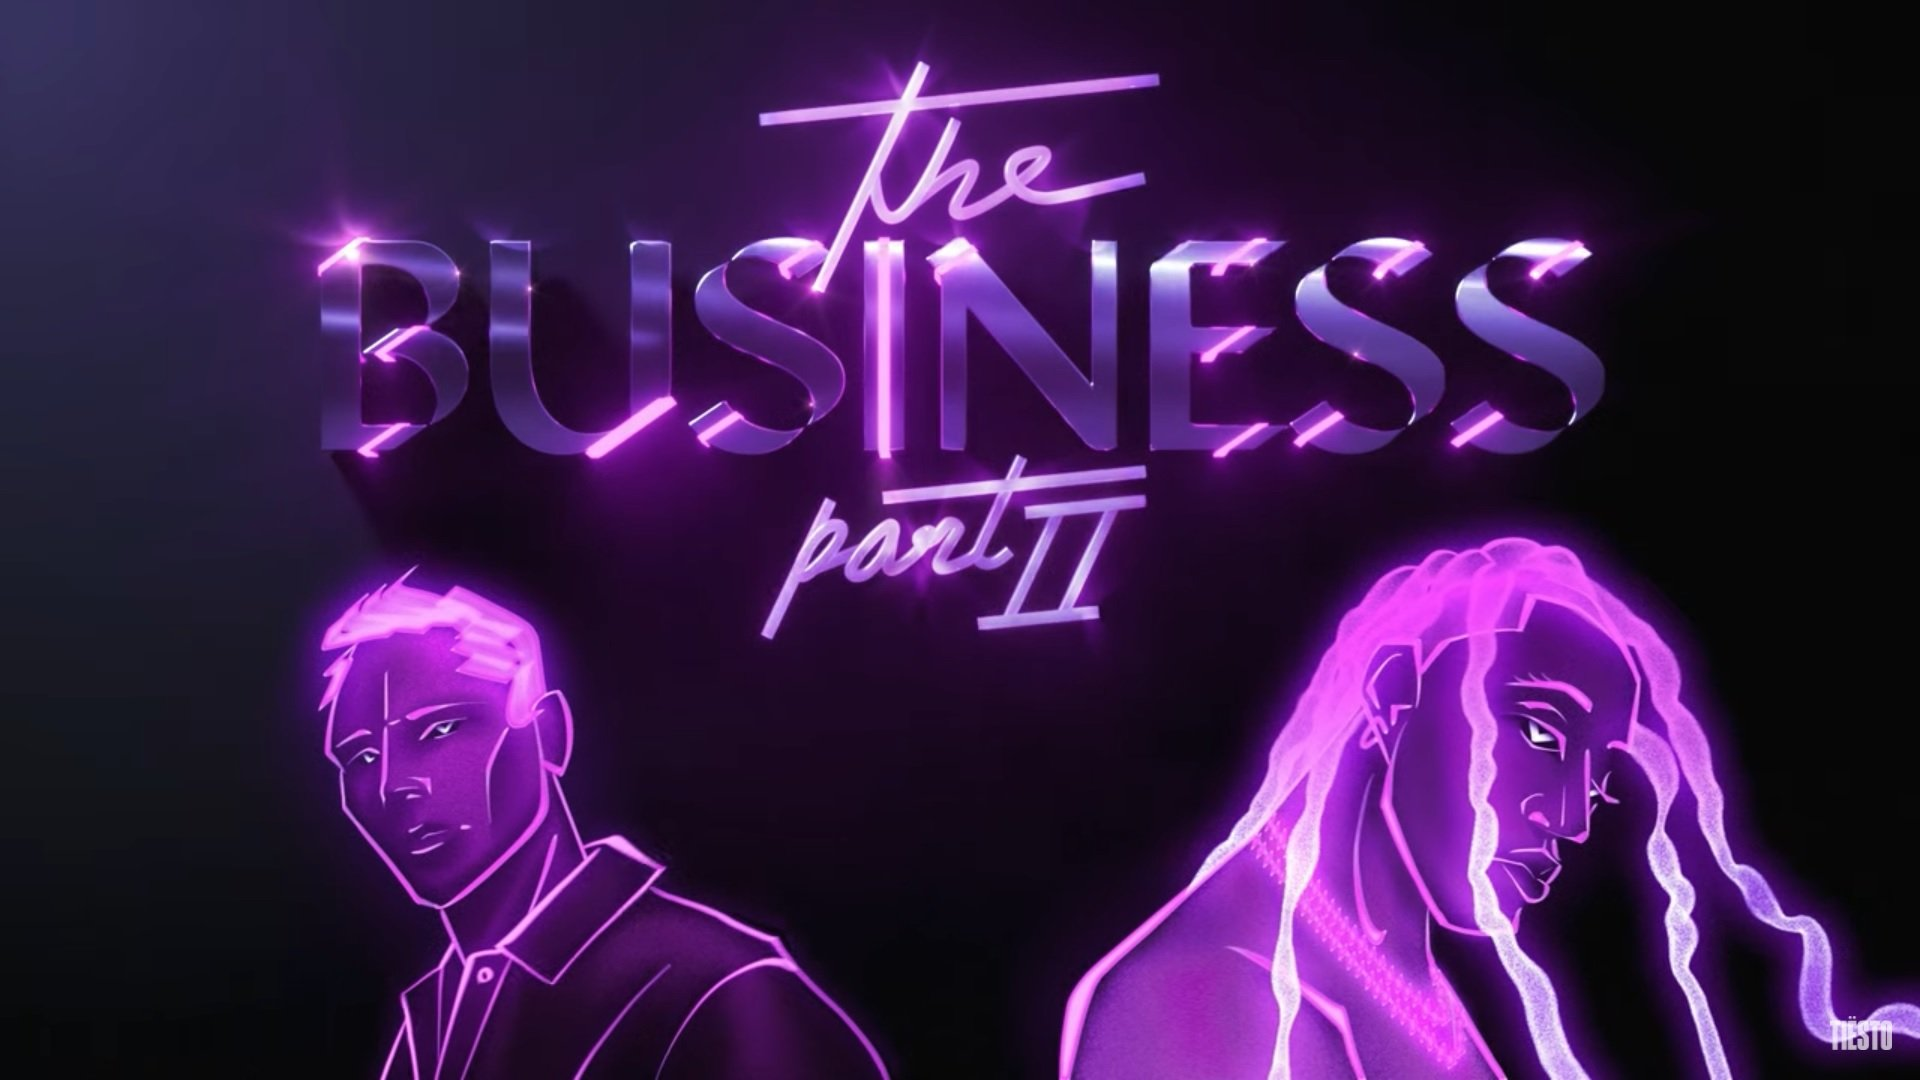 Tiesto Ty Dolla ign The Business Pt. II